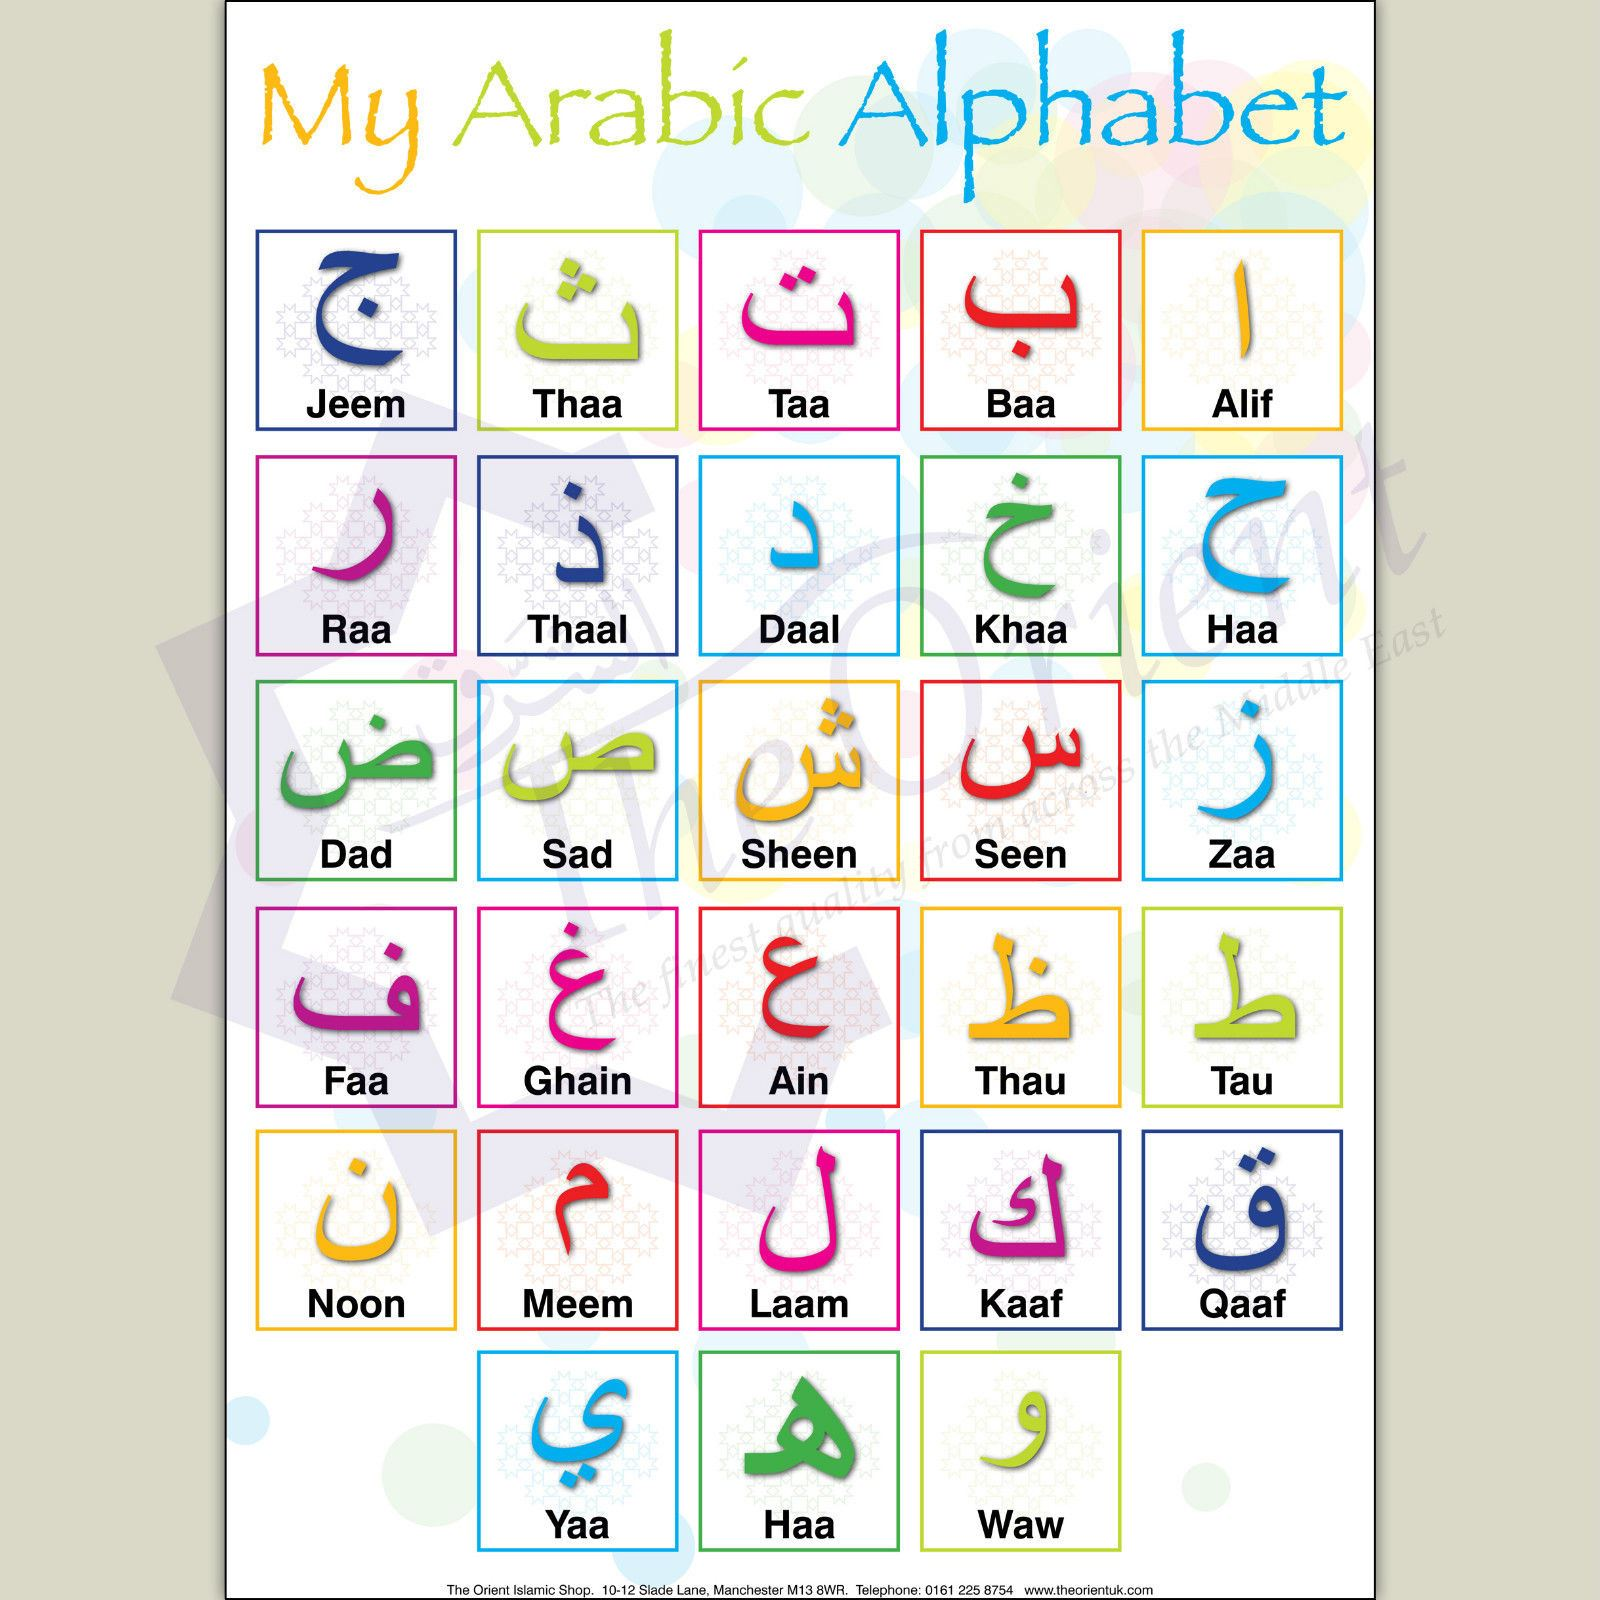 My Arabic Alphabet A3 Learning Poster Teaching Arabic